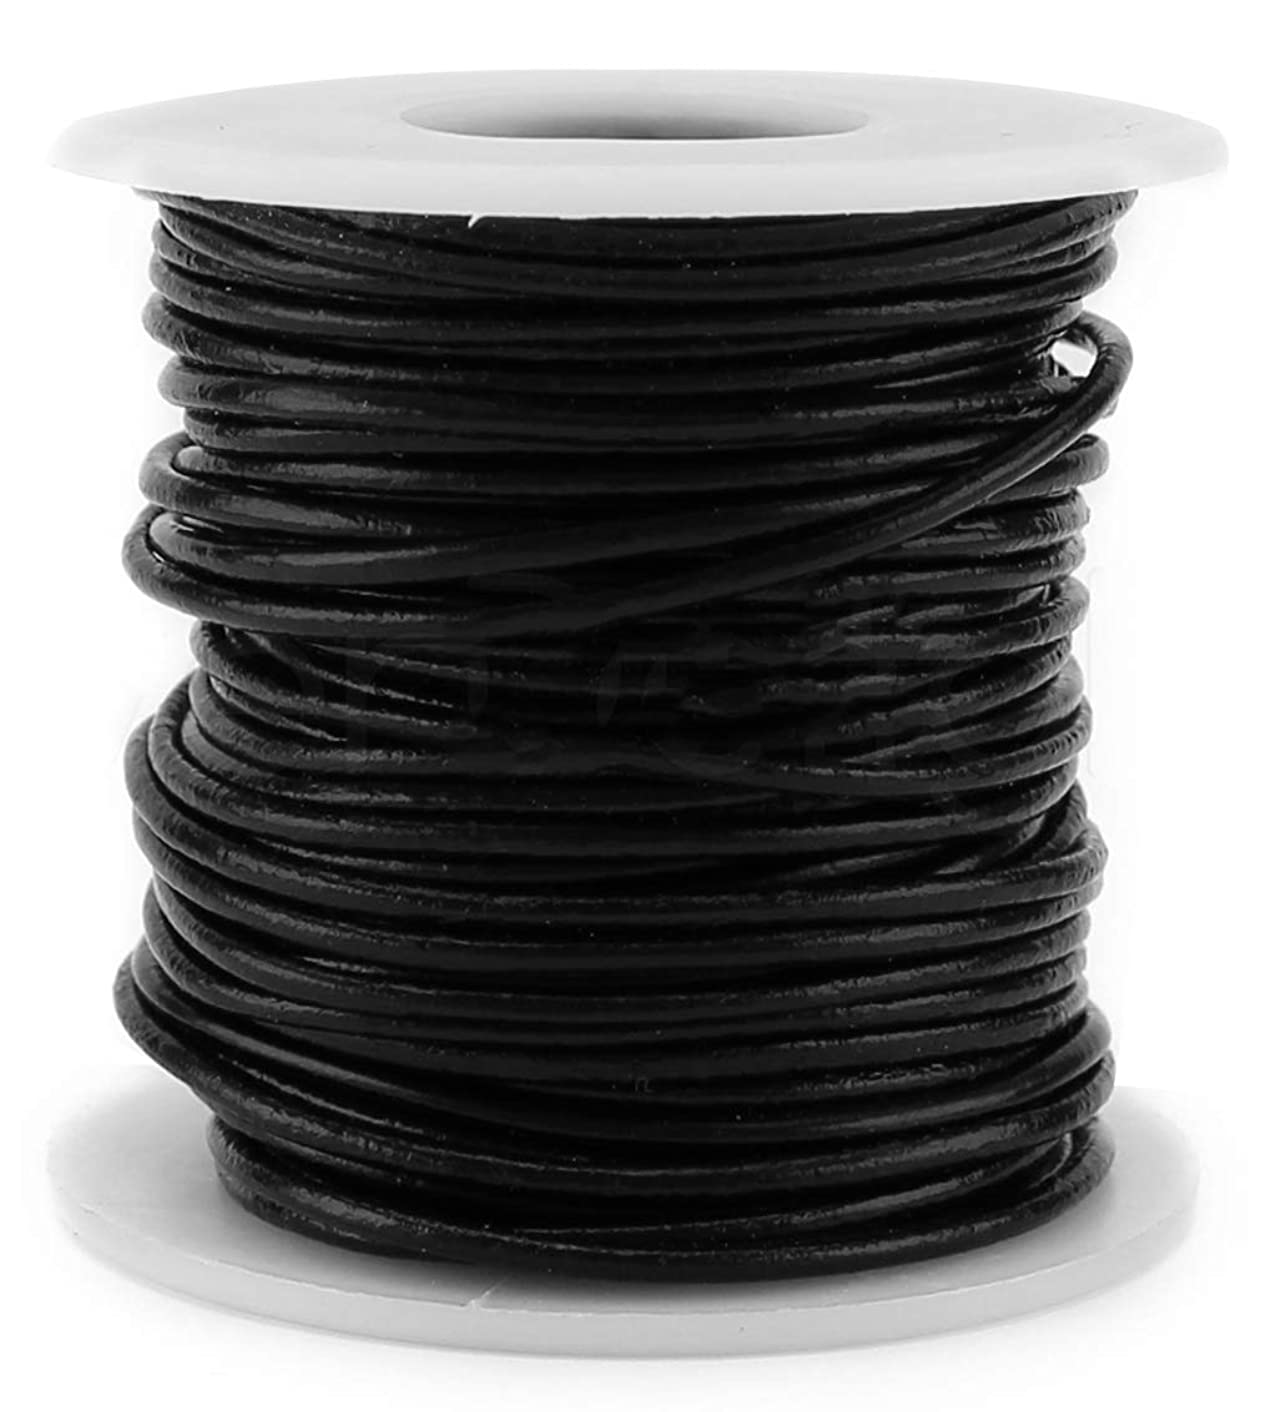 CleverDelights Black Round Premium Genuine Leather Cord - 2mm - 10 Meters (11 Yards) - Beading Jewelry